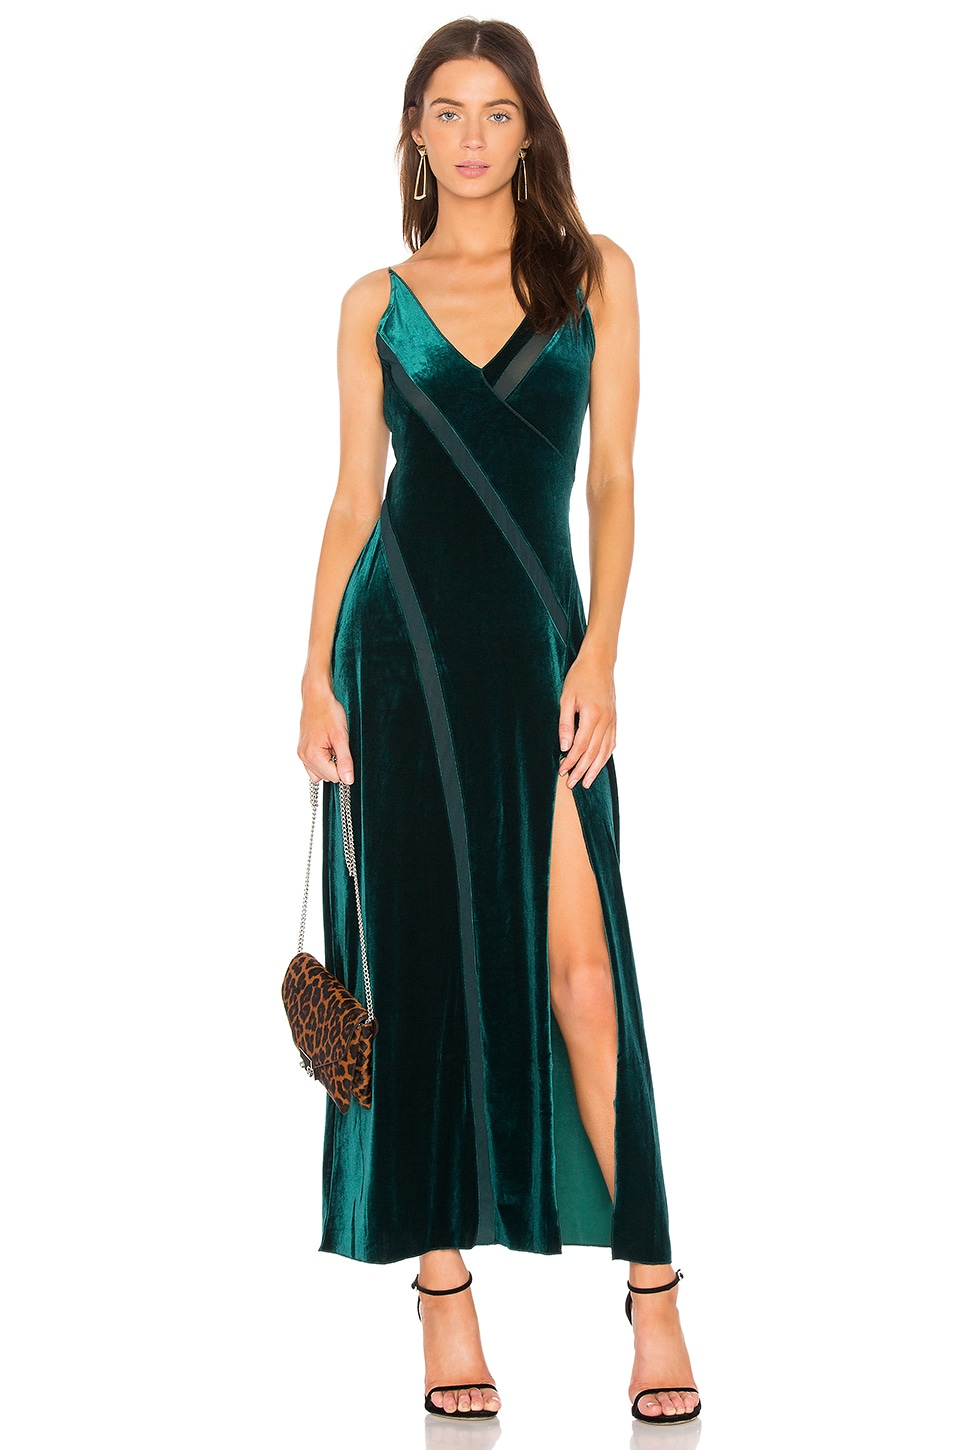 Free People Spliced Velvet Maxi Dress in Green